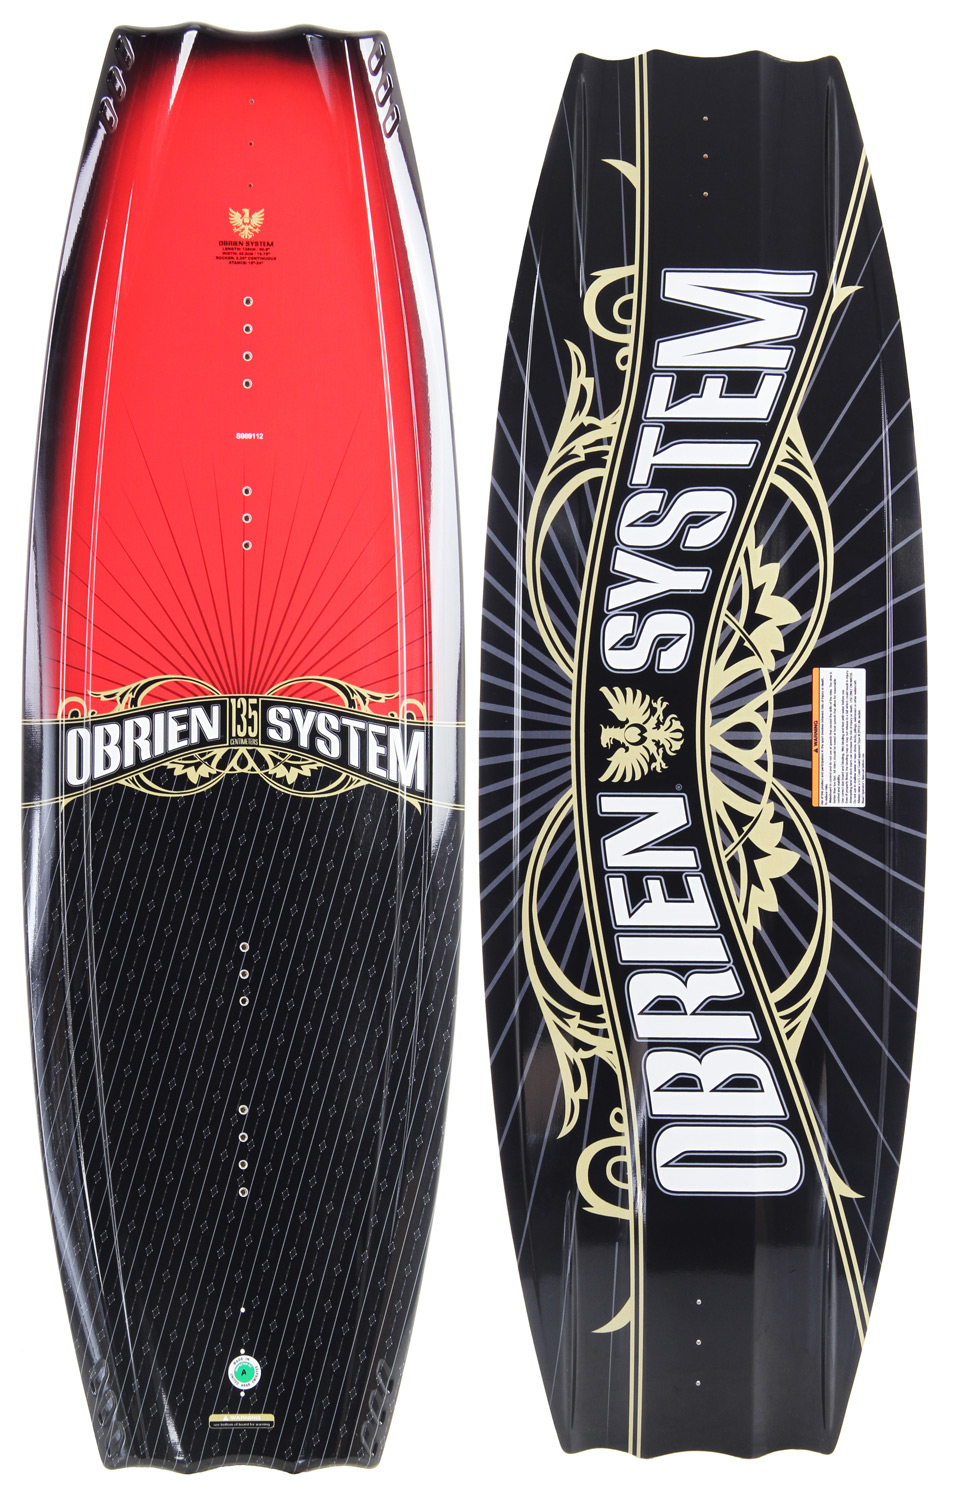 Wake The O'Brien System Wakeboard is a favorite of our progressing riders! The System is designed for the intermediate level wakeboarder, but is packed with high performance features that will make learning new moves easier. A predictable continuous rocker line and single long-base center fin provide a classic on-water feel. Added control is provided by double barrel channels that exit at the tips of the board. 4 molded side fins have been included help with the stability factor, so you can shred without the fear of wiping out! A unique shape makes it easy to ride deep and smooth in the water, and keeps high impact landings extra soft! The O'Brien System Wakeboard will take your riding to new heights! Wakeboard Binding CompatabilityCan not accomodate bindings with a 6 inch binding plate. Can accommodate bindings with a 8 inch binding plate in all position options found here. - $112.95